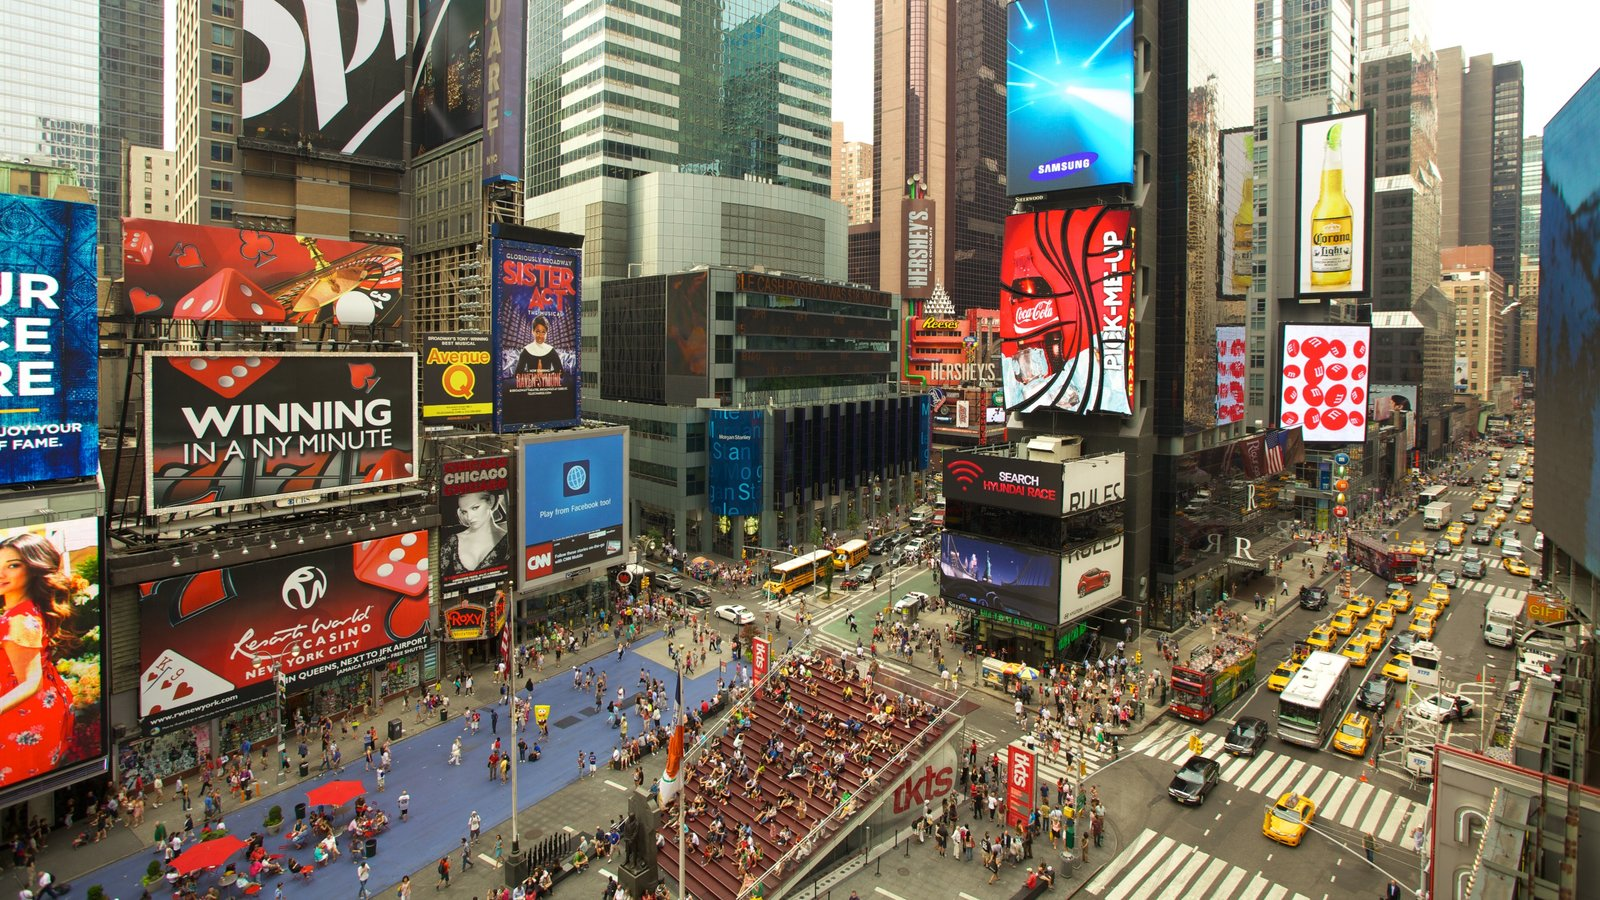 Times Square showing a high rise building, street scenes and signage